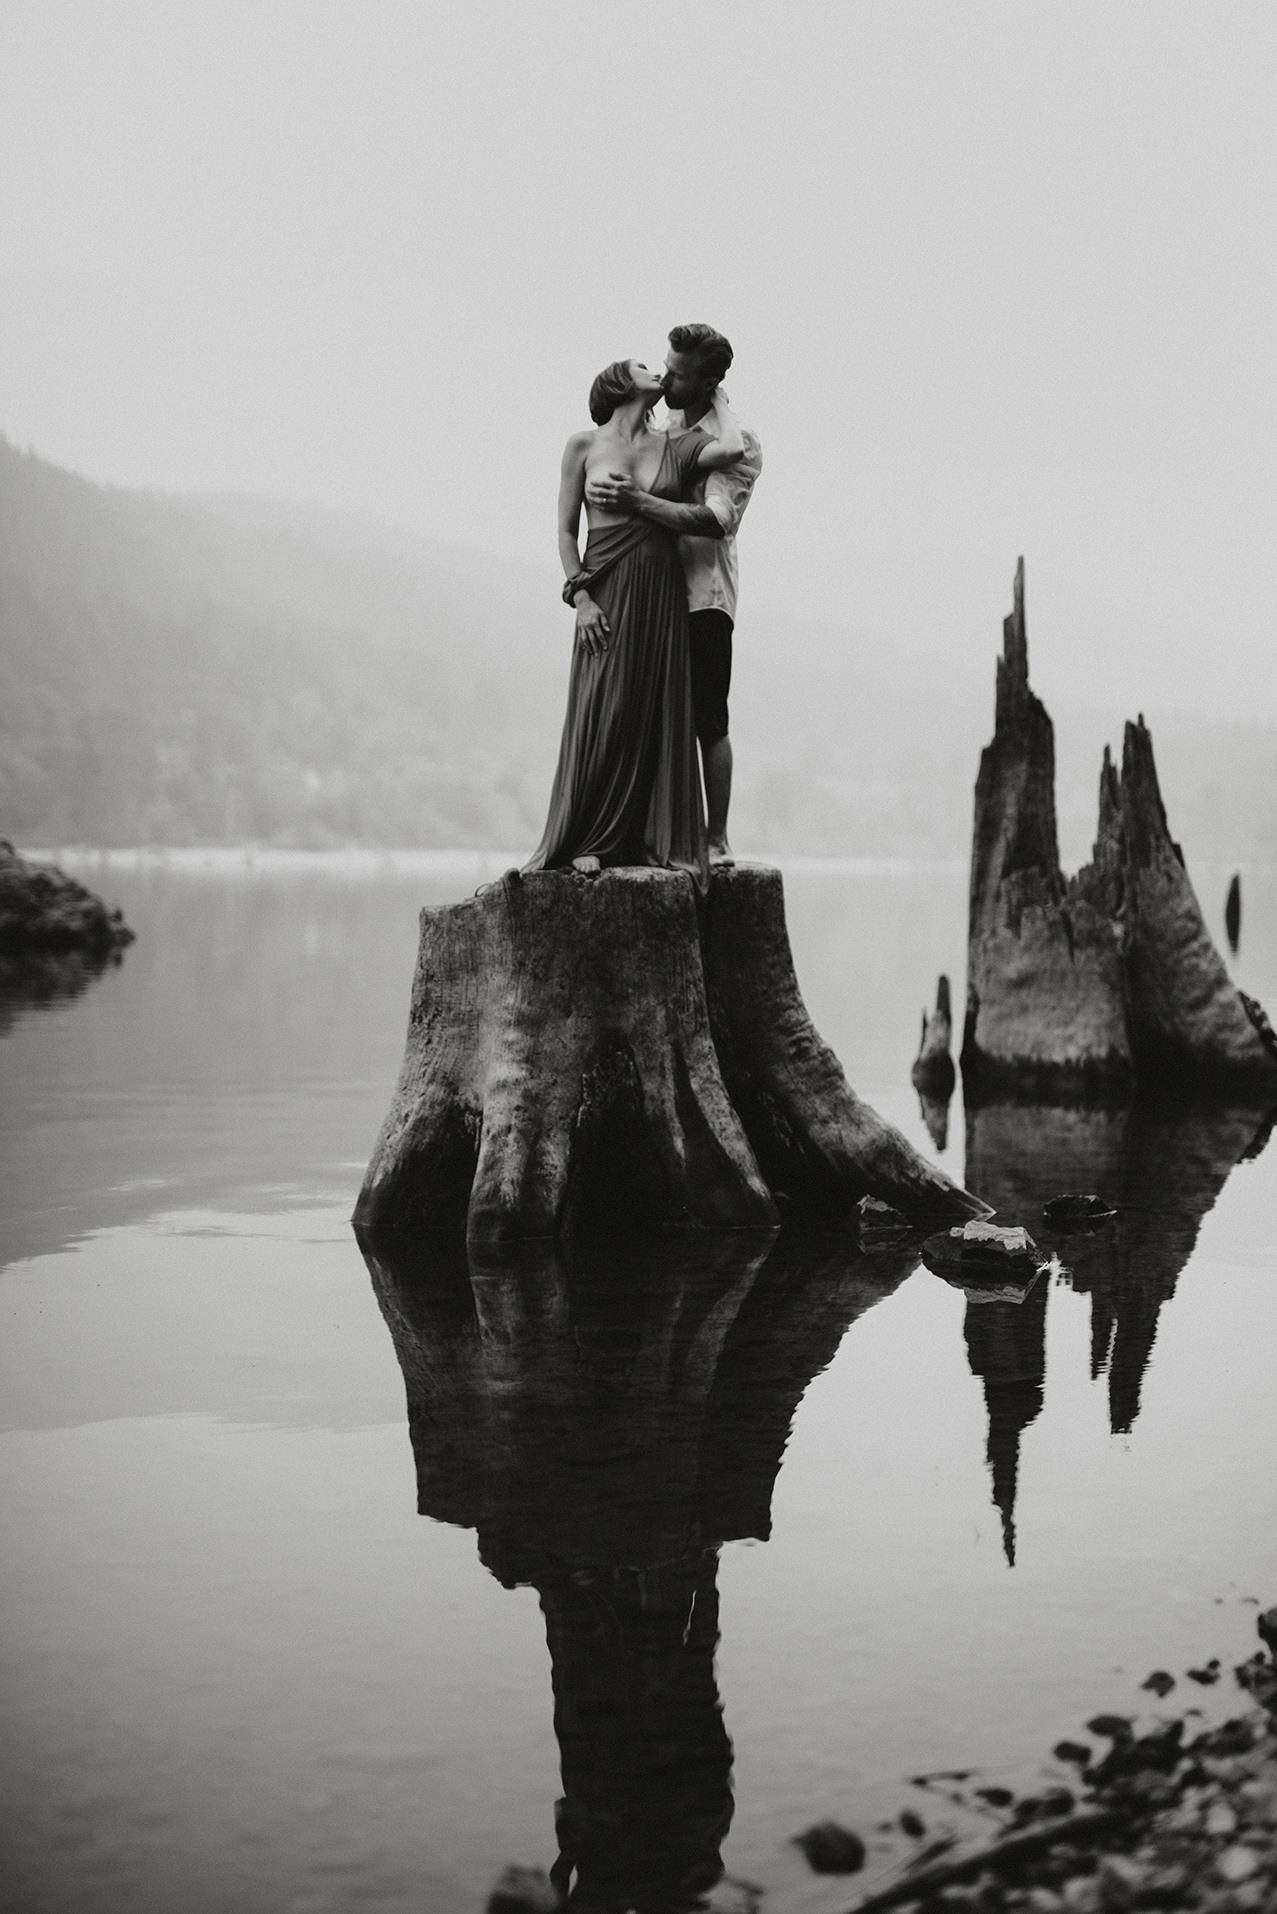 Black and White Photo of a man grabbing a girls boob in the middle of a lake